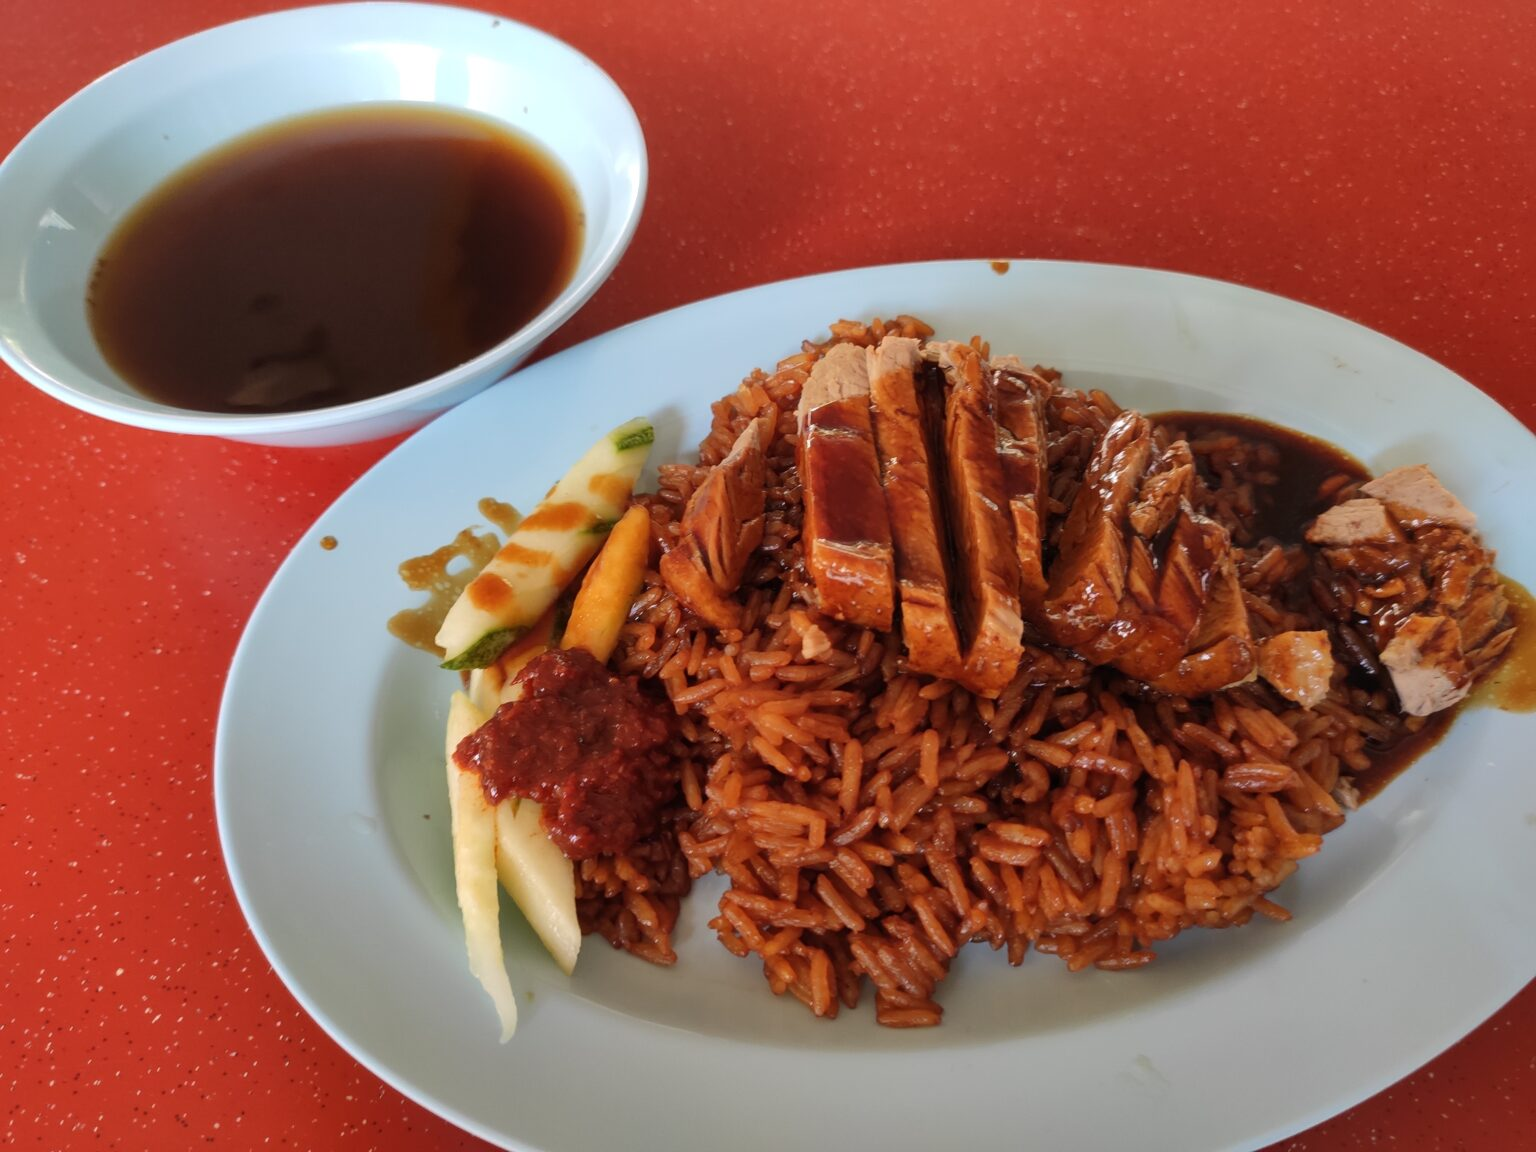 Review: Boon Tong Kee Kway Chap Braised Duck (Singapore)